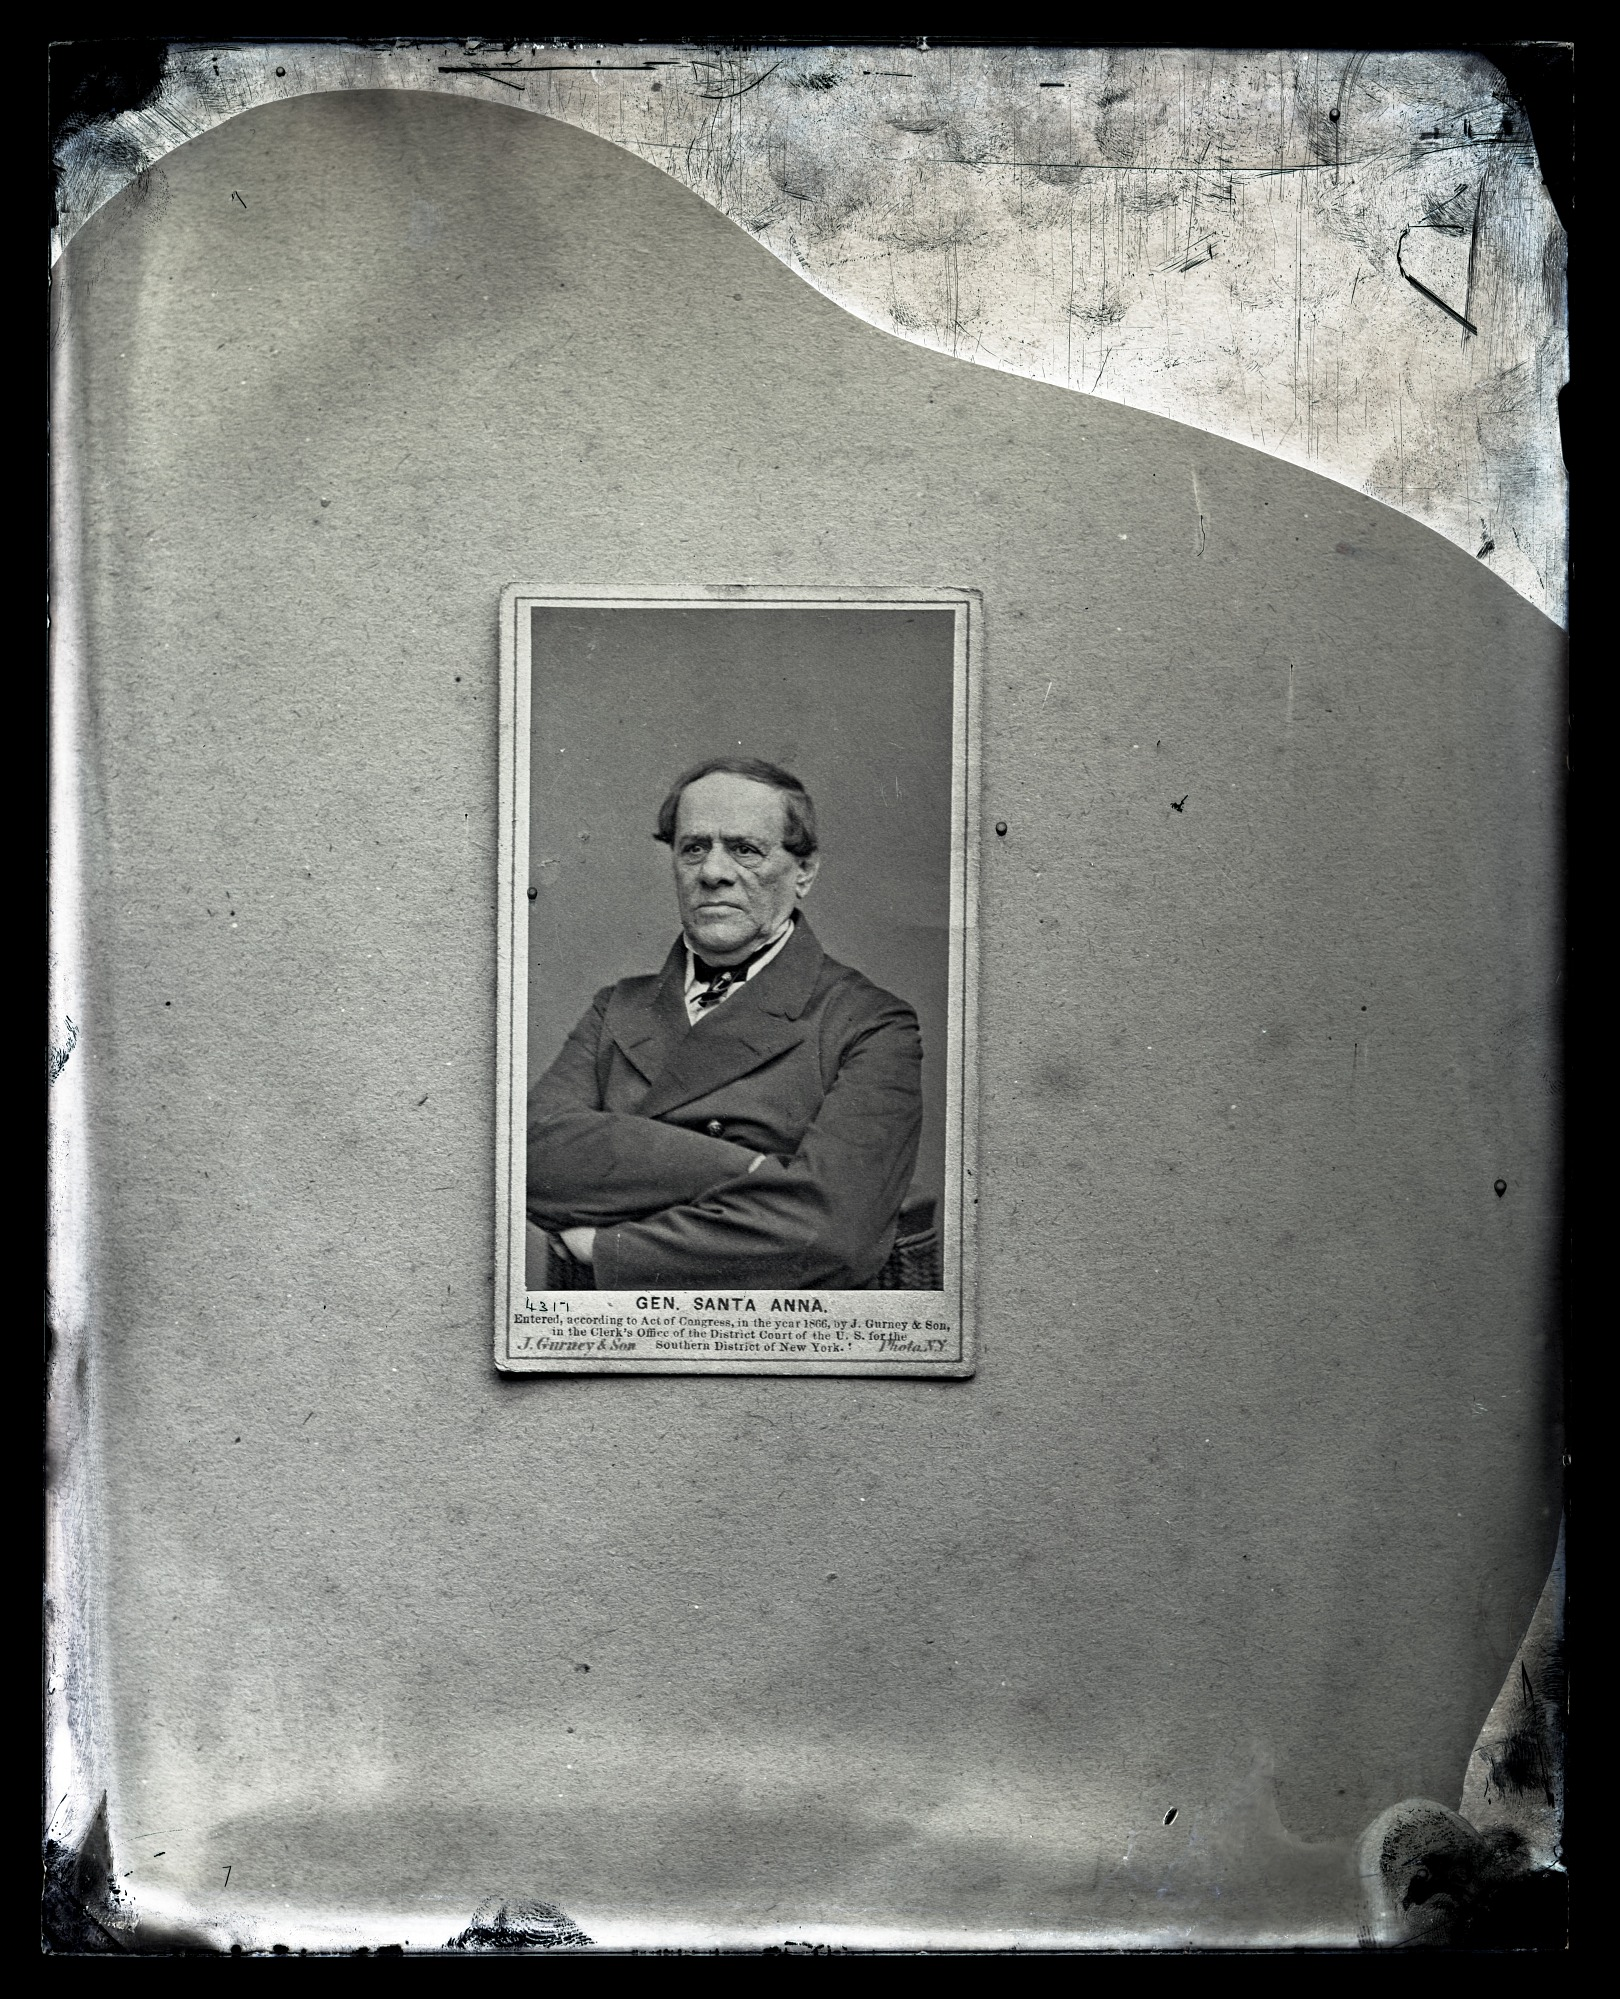 Carte de Visite of General Santa Anna by J. Gurney & Son, 1866